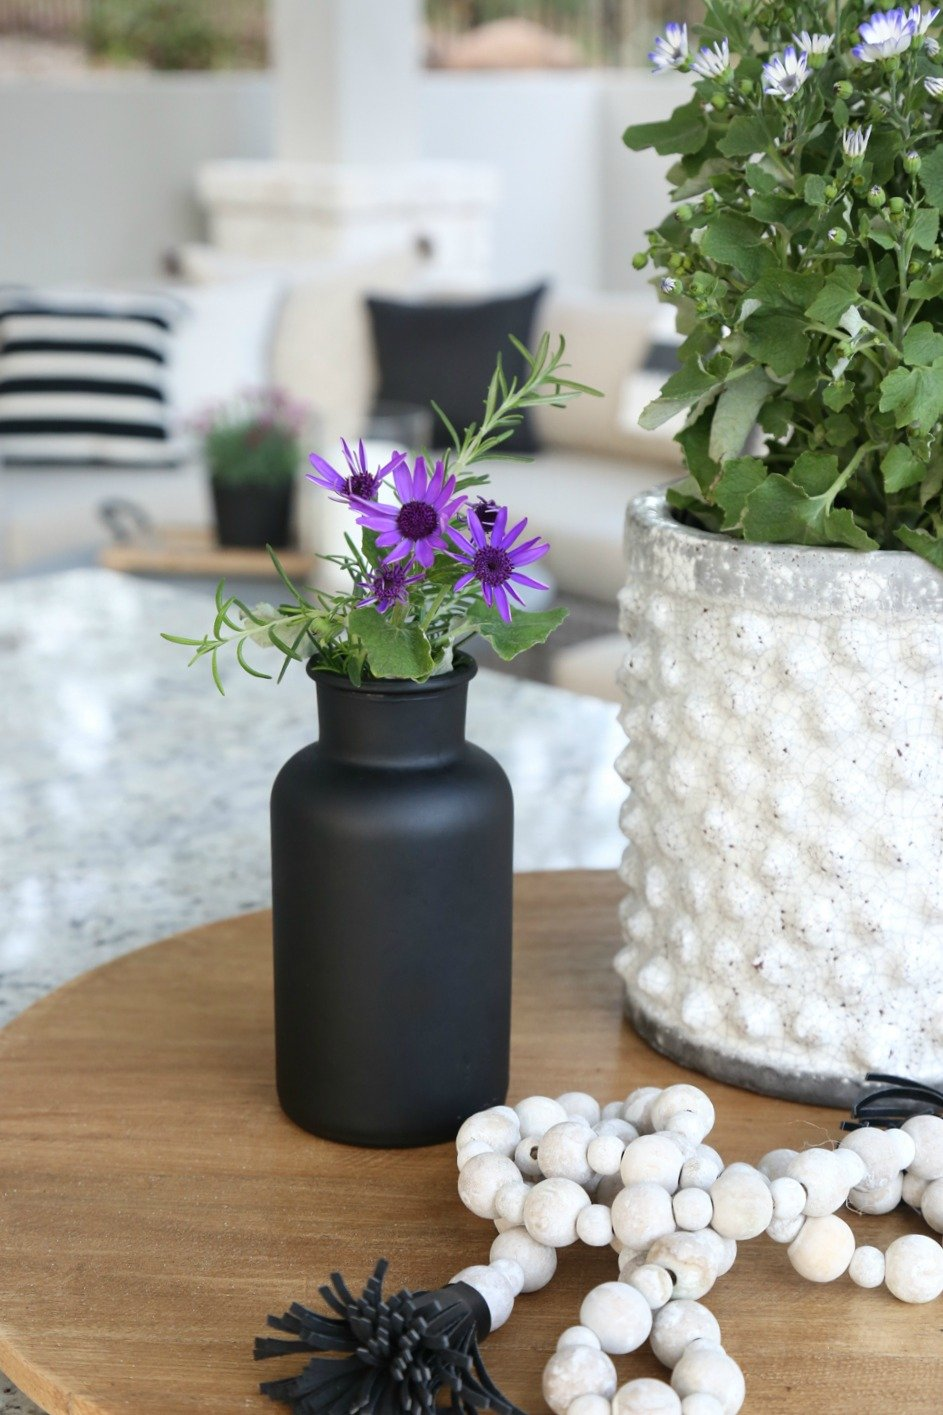 Spray bottles and vases with Testors CreateFX Chalkboard Spray Paint